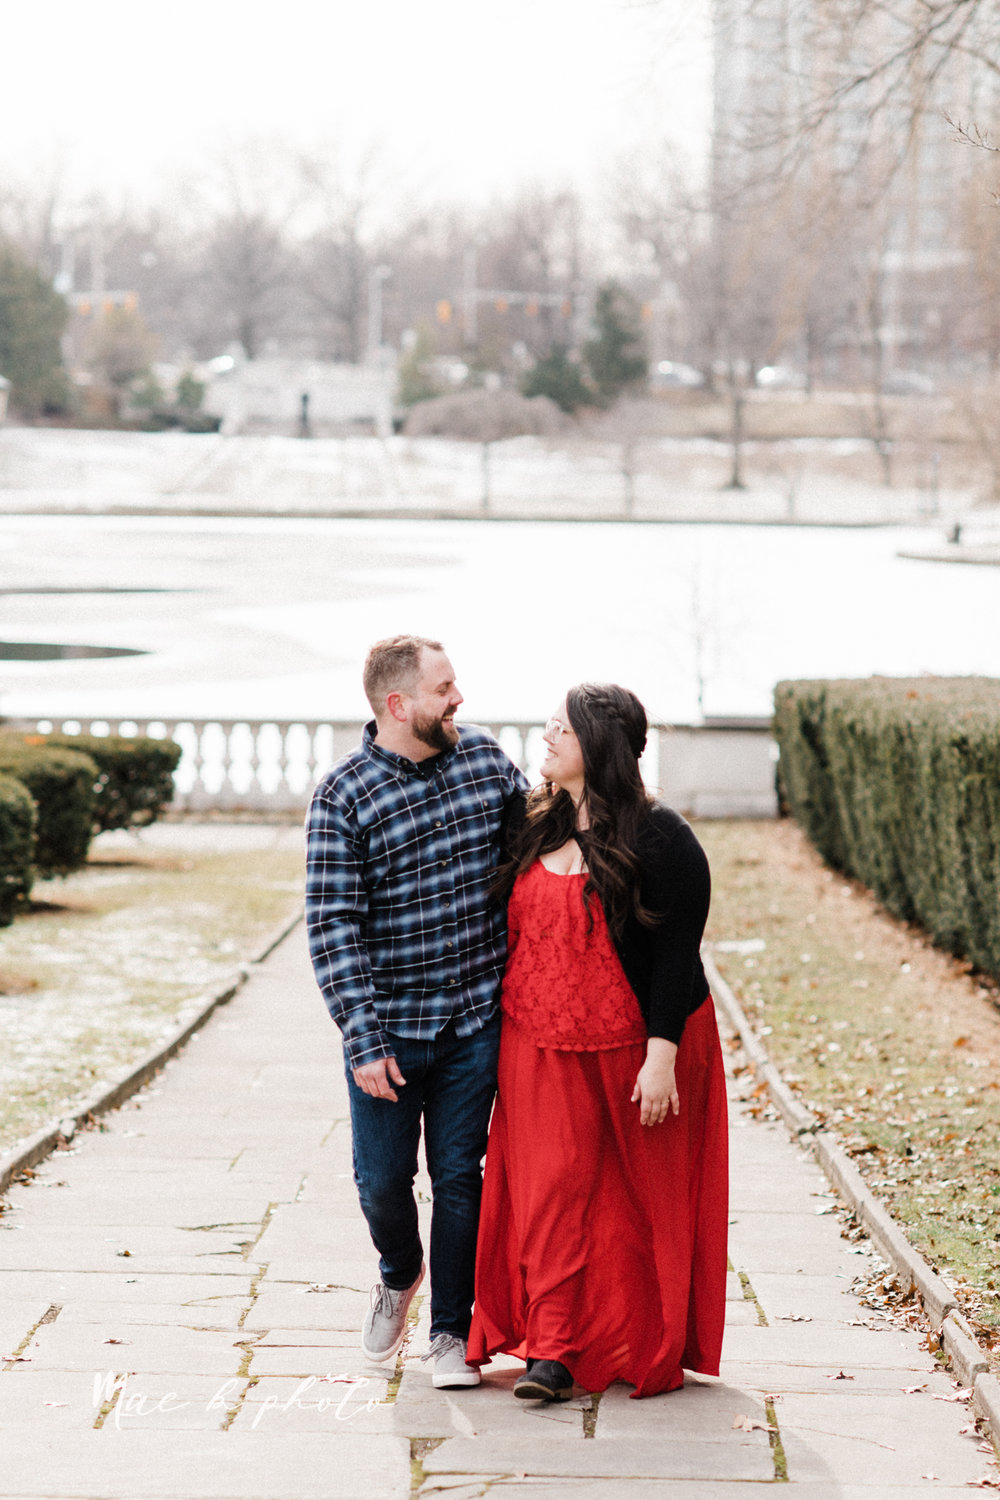 brad and kaitlin's winter museum engagement session at the cleveland museum of art and the cleveland natural history museum and the botanical gardens in cleveland ohio photographed by youngstown wedding photographer mae b photo-6.jpg